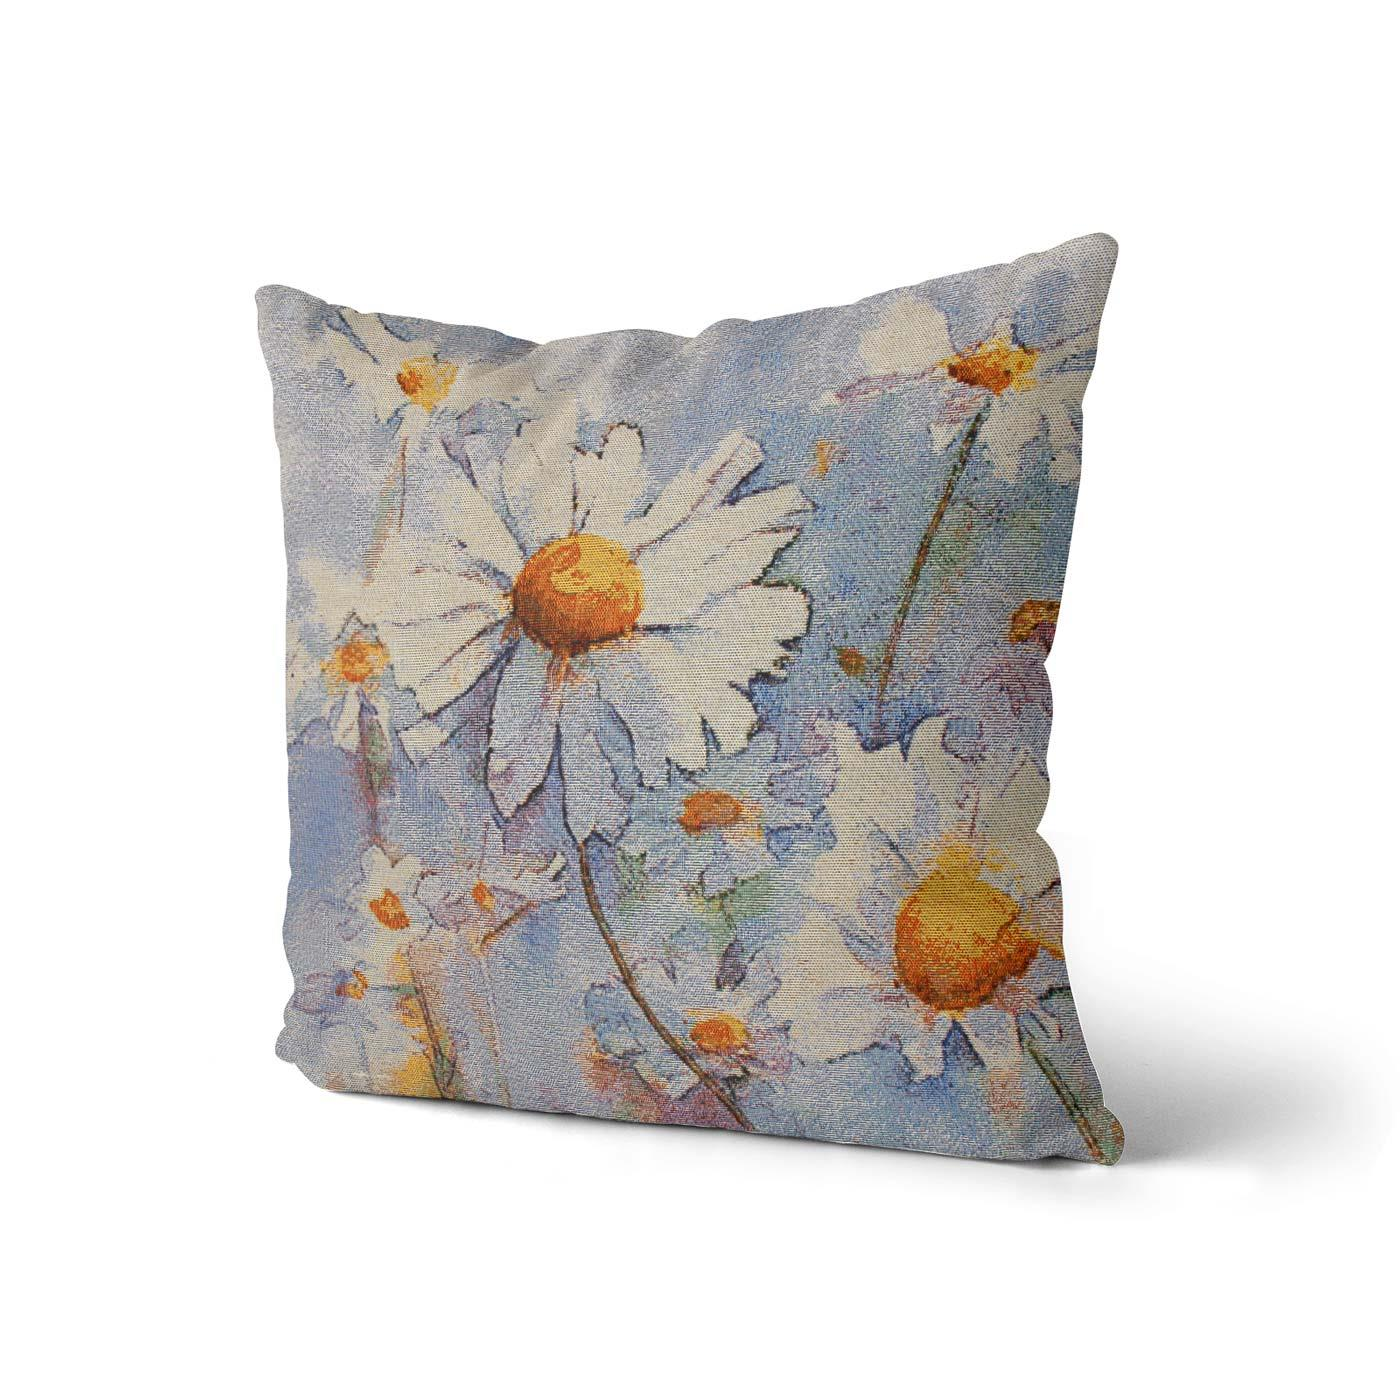 Tapestry-Cushion-Covers-Vintage-Pillow-Cover-Collection-18-034-45cm-Filled-Cushions thumbnail 39